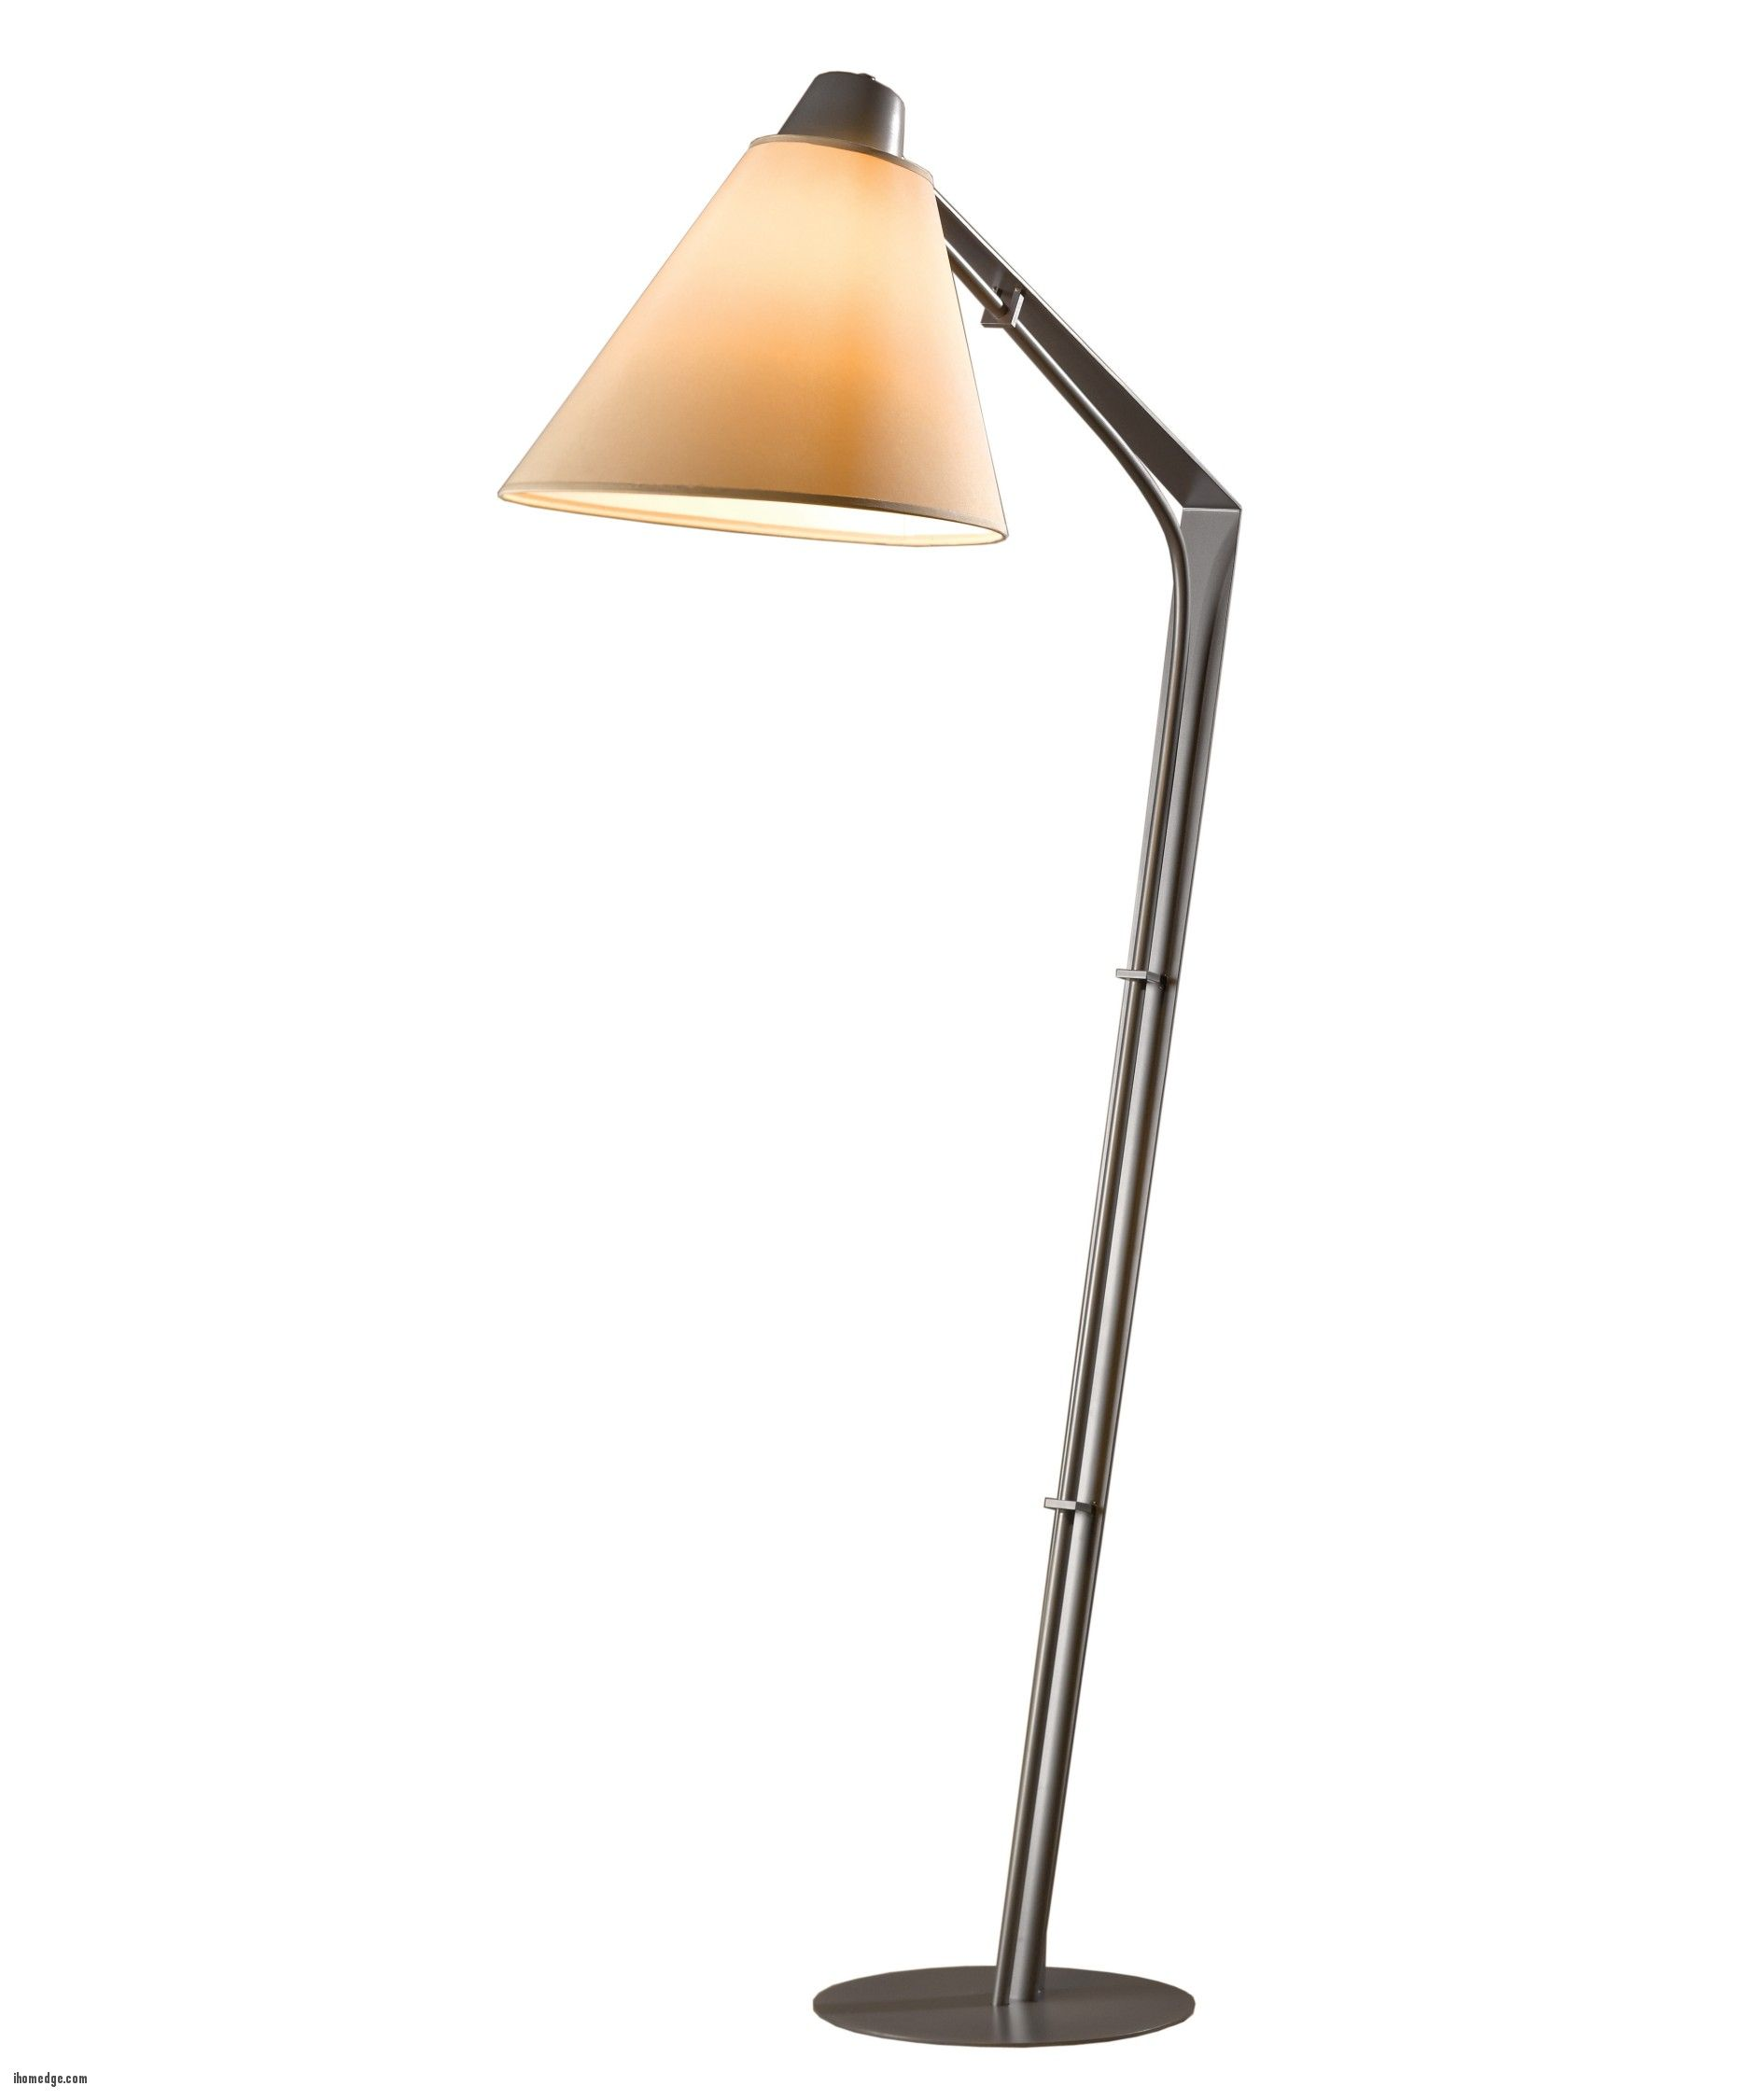 Awesome Unique Wall Mounted Reading Lights Bedside Reading Lamp Http Ihomedge Com Wall Mounted Rea Yellow Table Lamp Cool Floor Lamps Flexible Floor Lamp Best floor lamps for reading